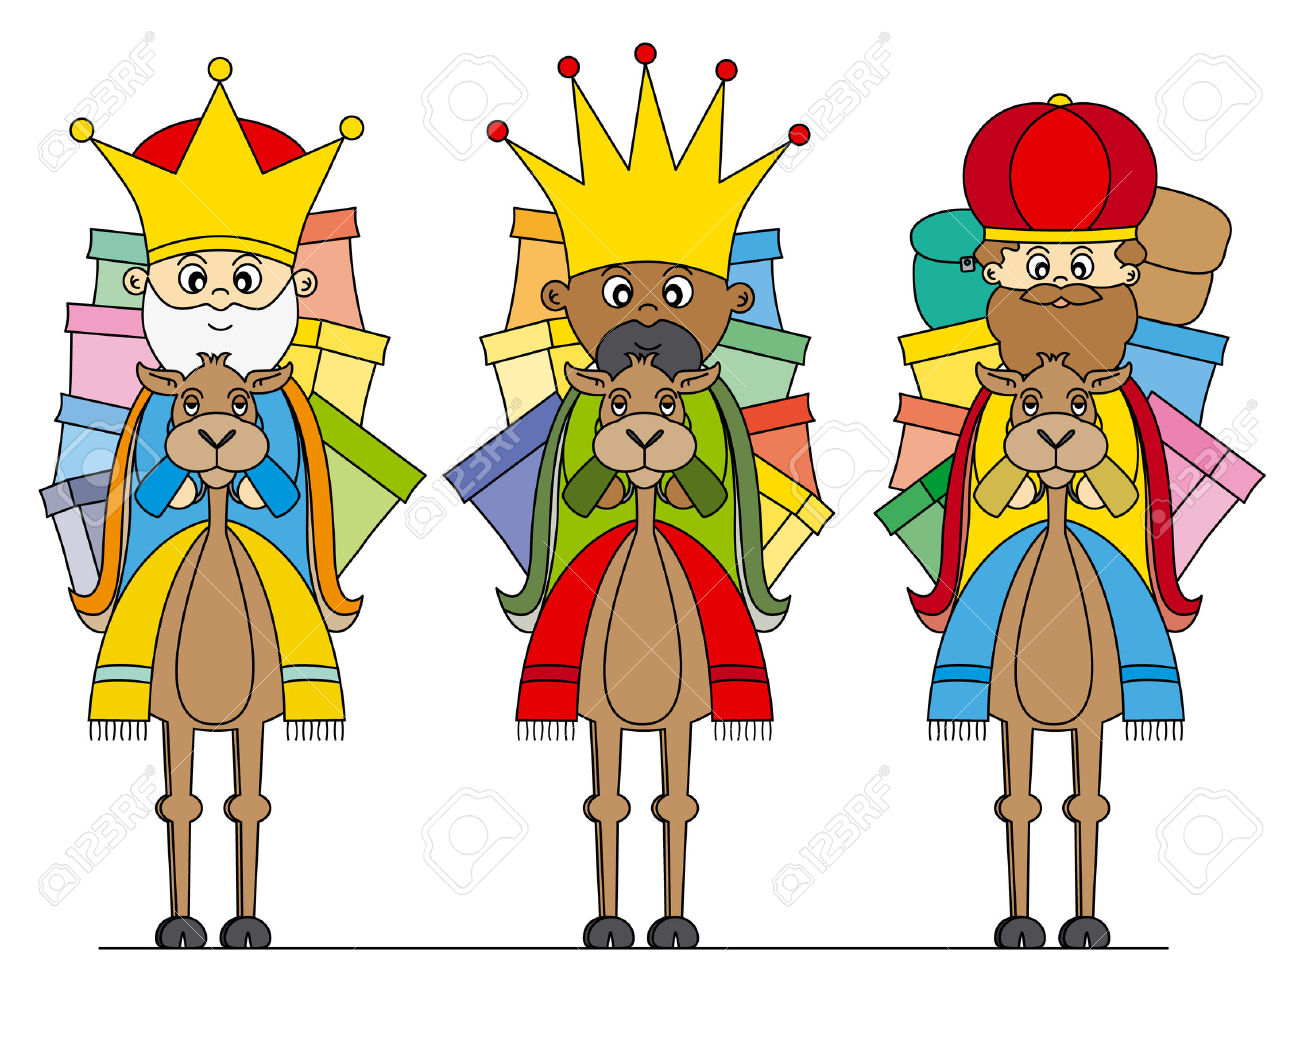 clipart reyes magos #11